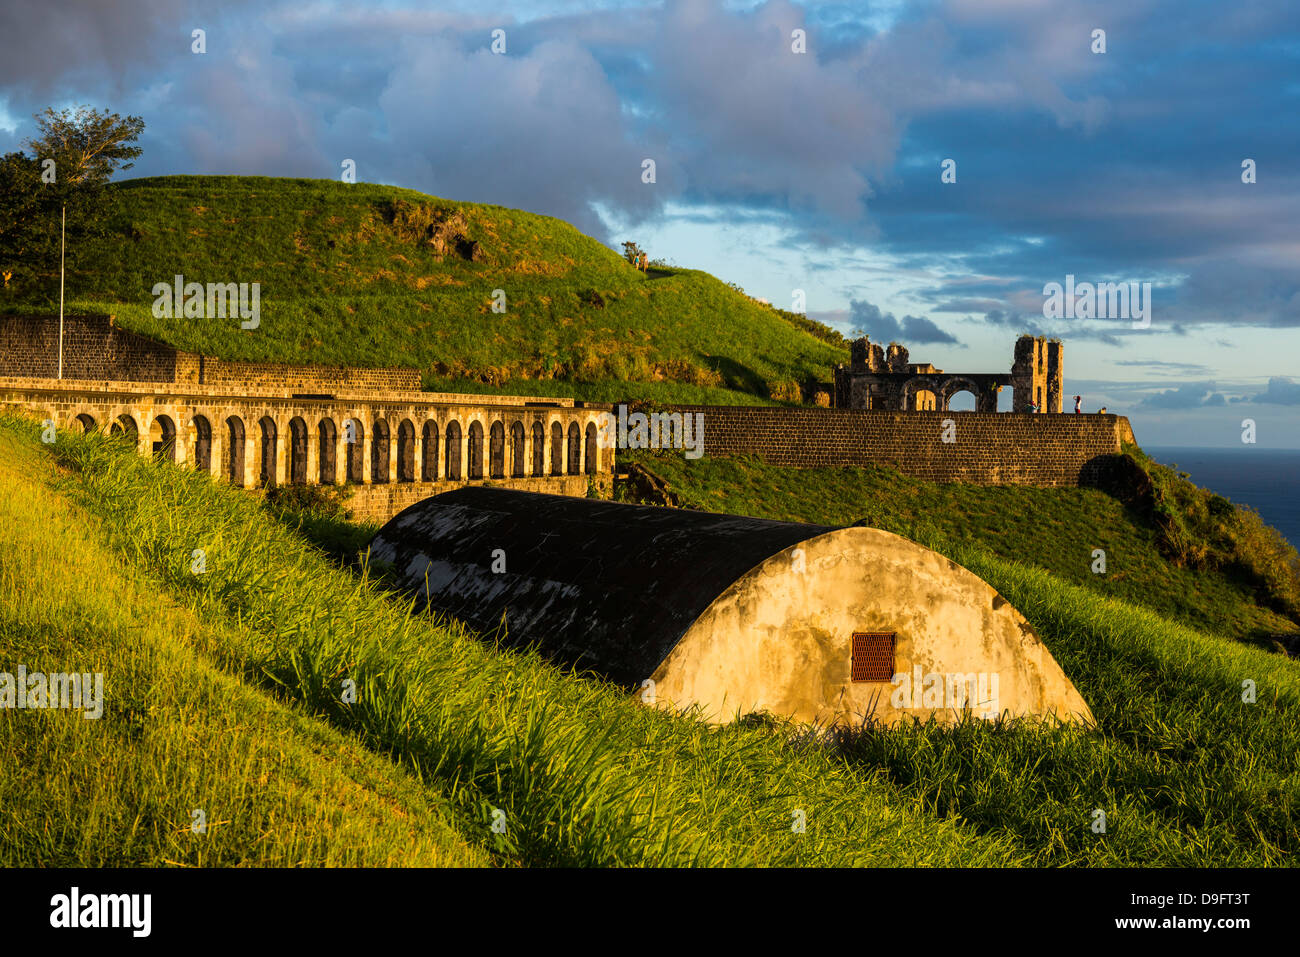 Brimstone Hill Fortress, UNESCO World Heritage Site, St. Kitts, St. Kitts and Nevis, Leeward Islands, West Indies, - Stock Image